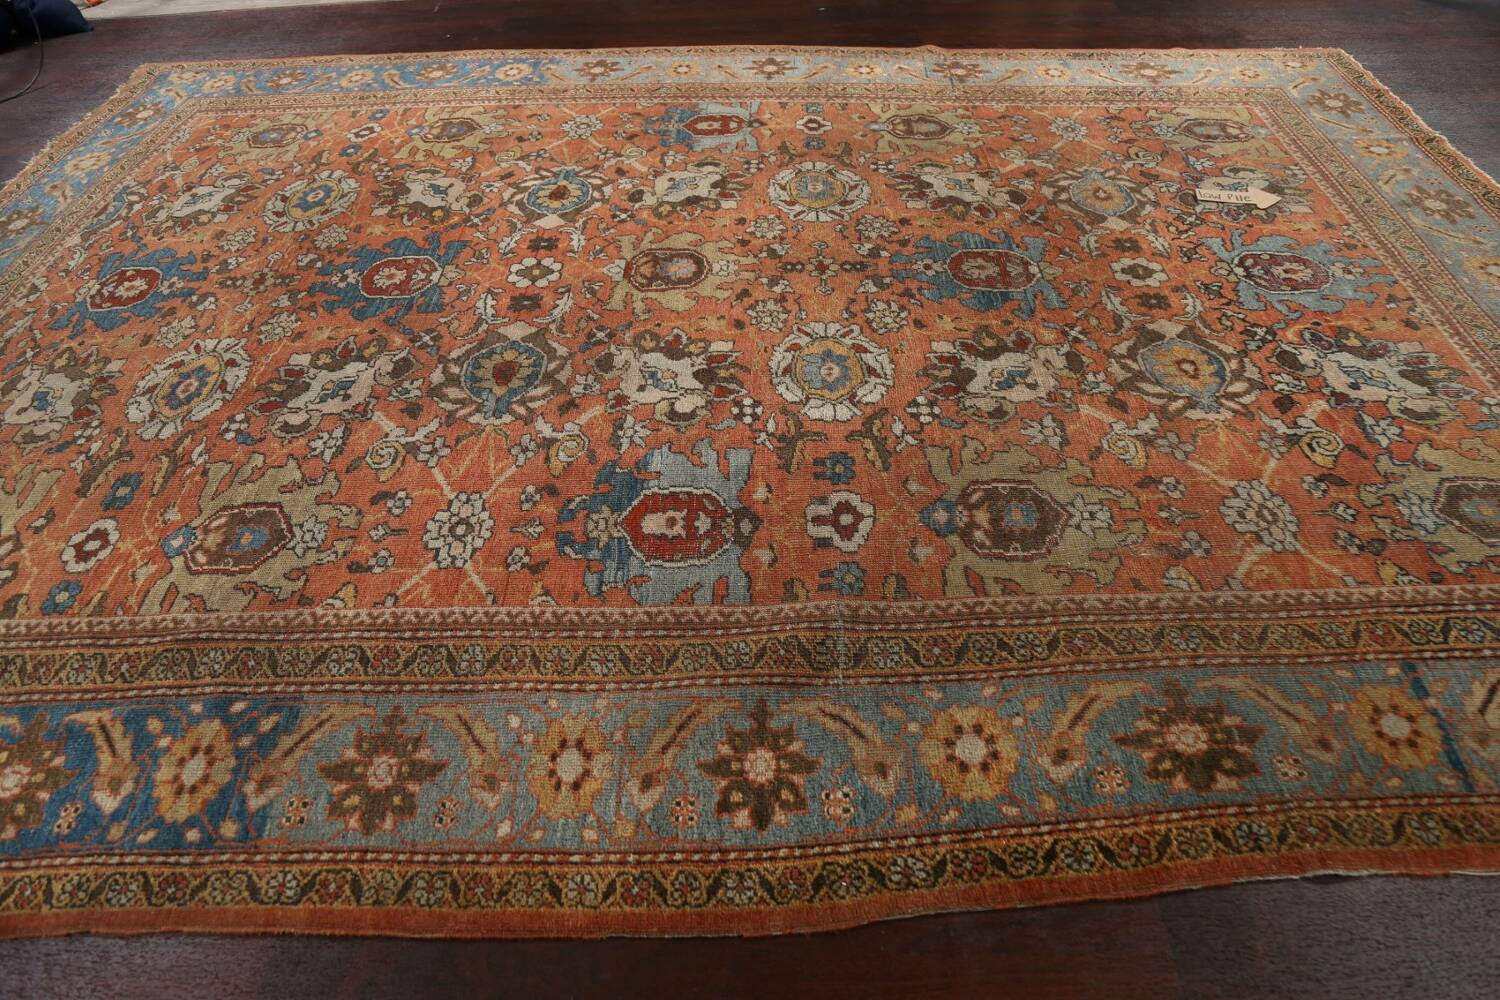 Pre-1900 Antique Vegetable Dye Sultanabad Persian Area Rug 9x12 image 14